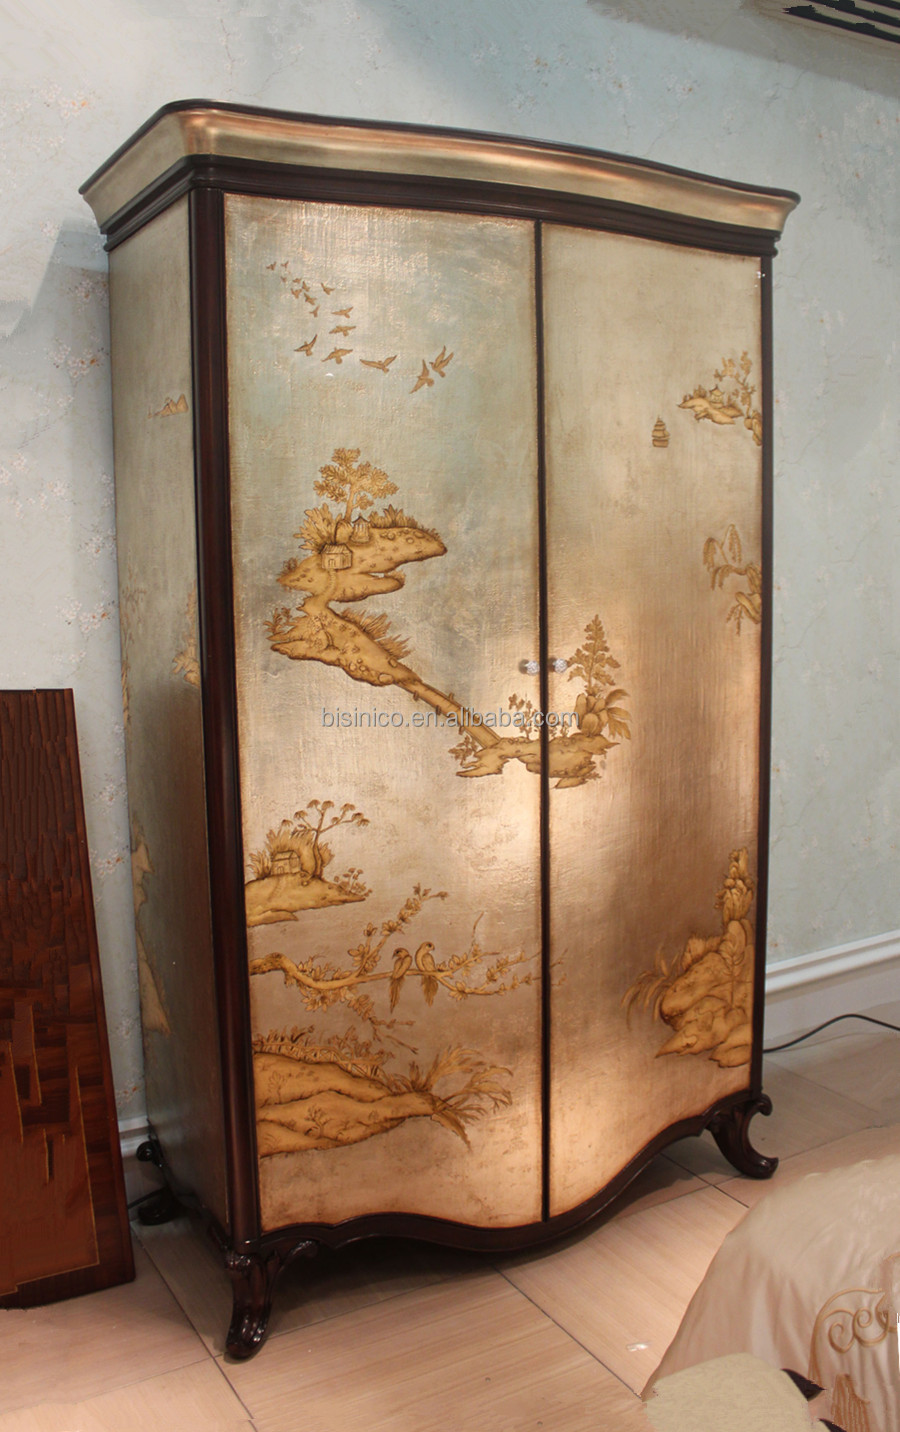 Antique Retro Bedroom Furniture, Vintage lacquer wooden Two-Door  Wardrobe/Armoire, Luxury Gold Lacquer Painting Palace Furniture, View royal  furniture ...